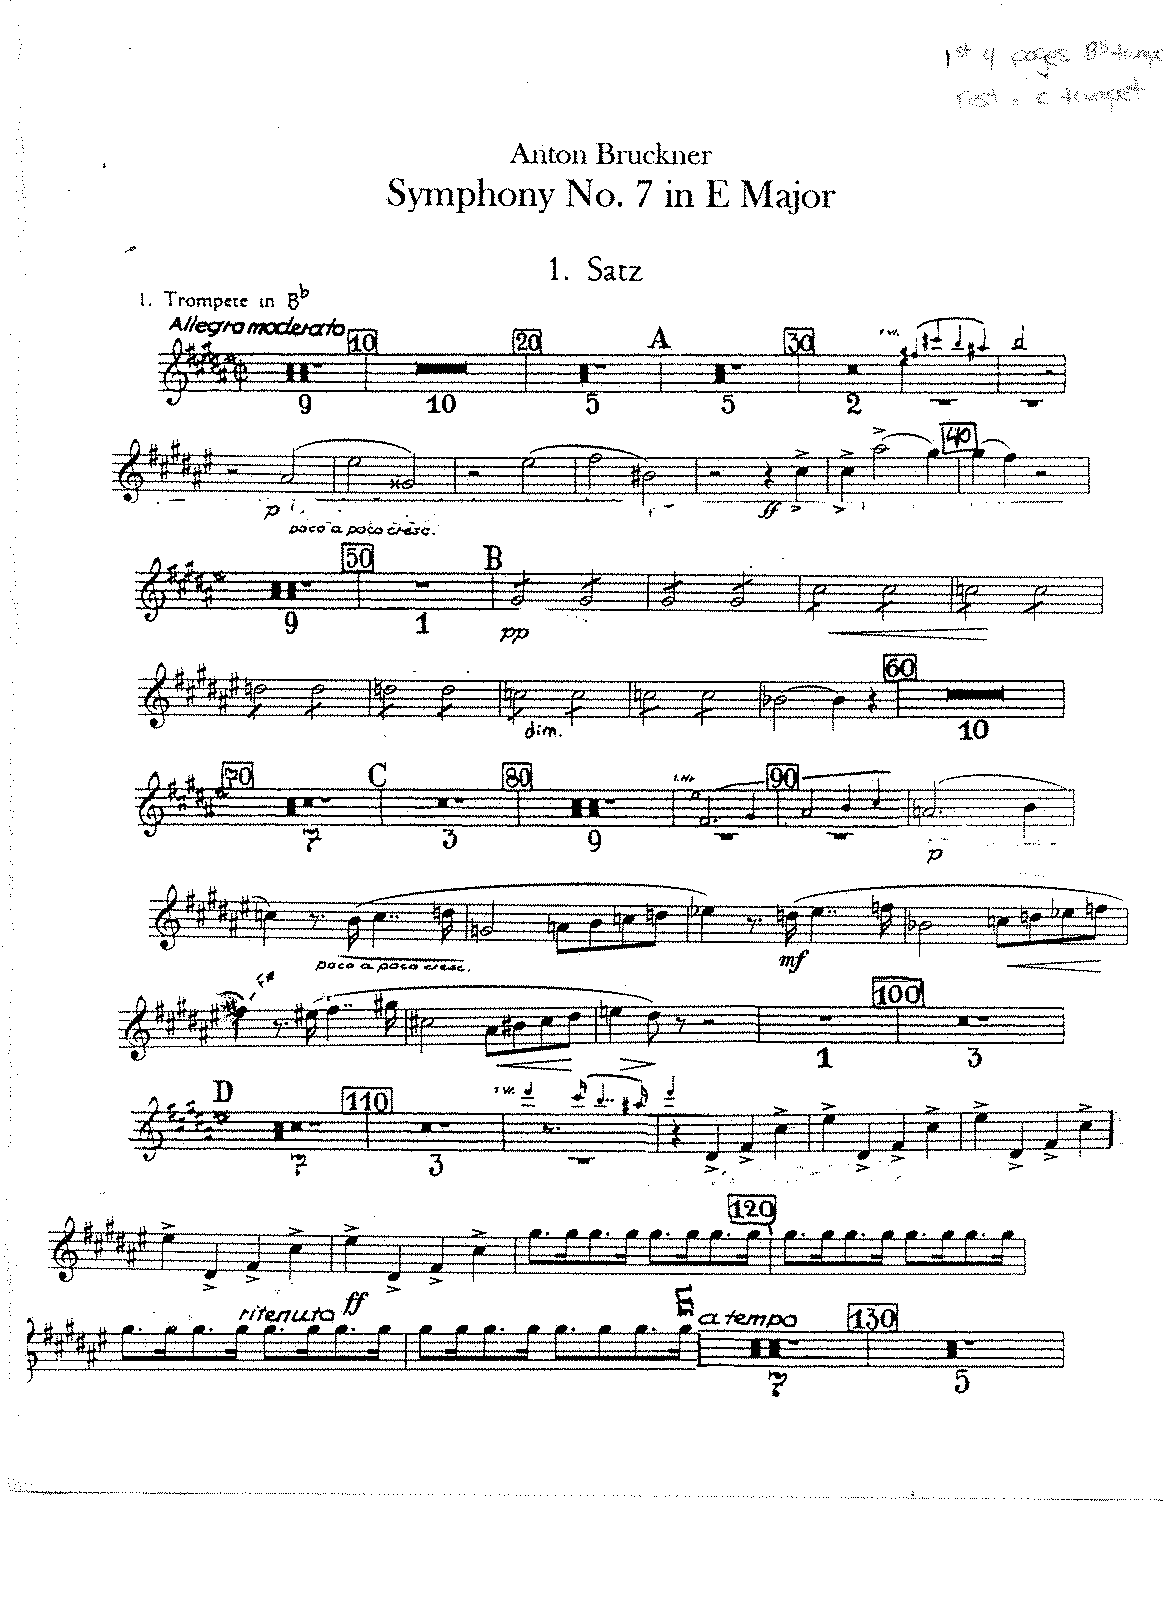 PMLP07929-Bruckner Symphony No. 7 Trumpet 1 (transposed for Bb & C trumpet).pdf